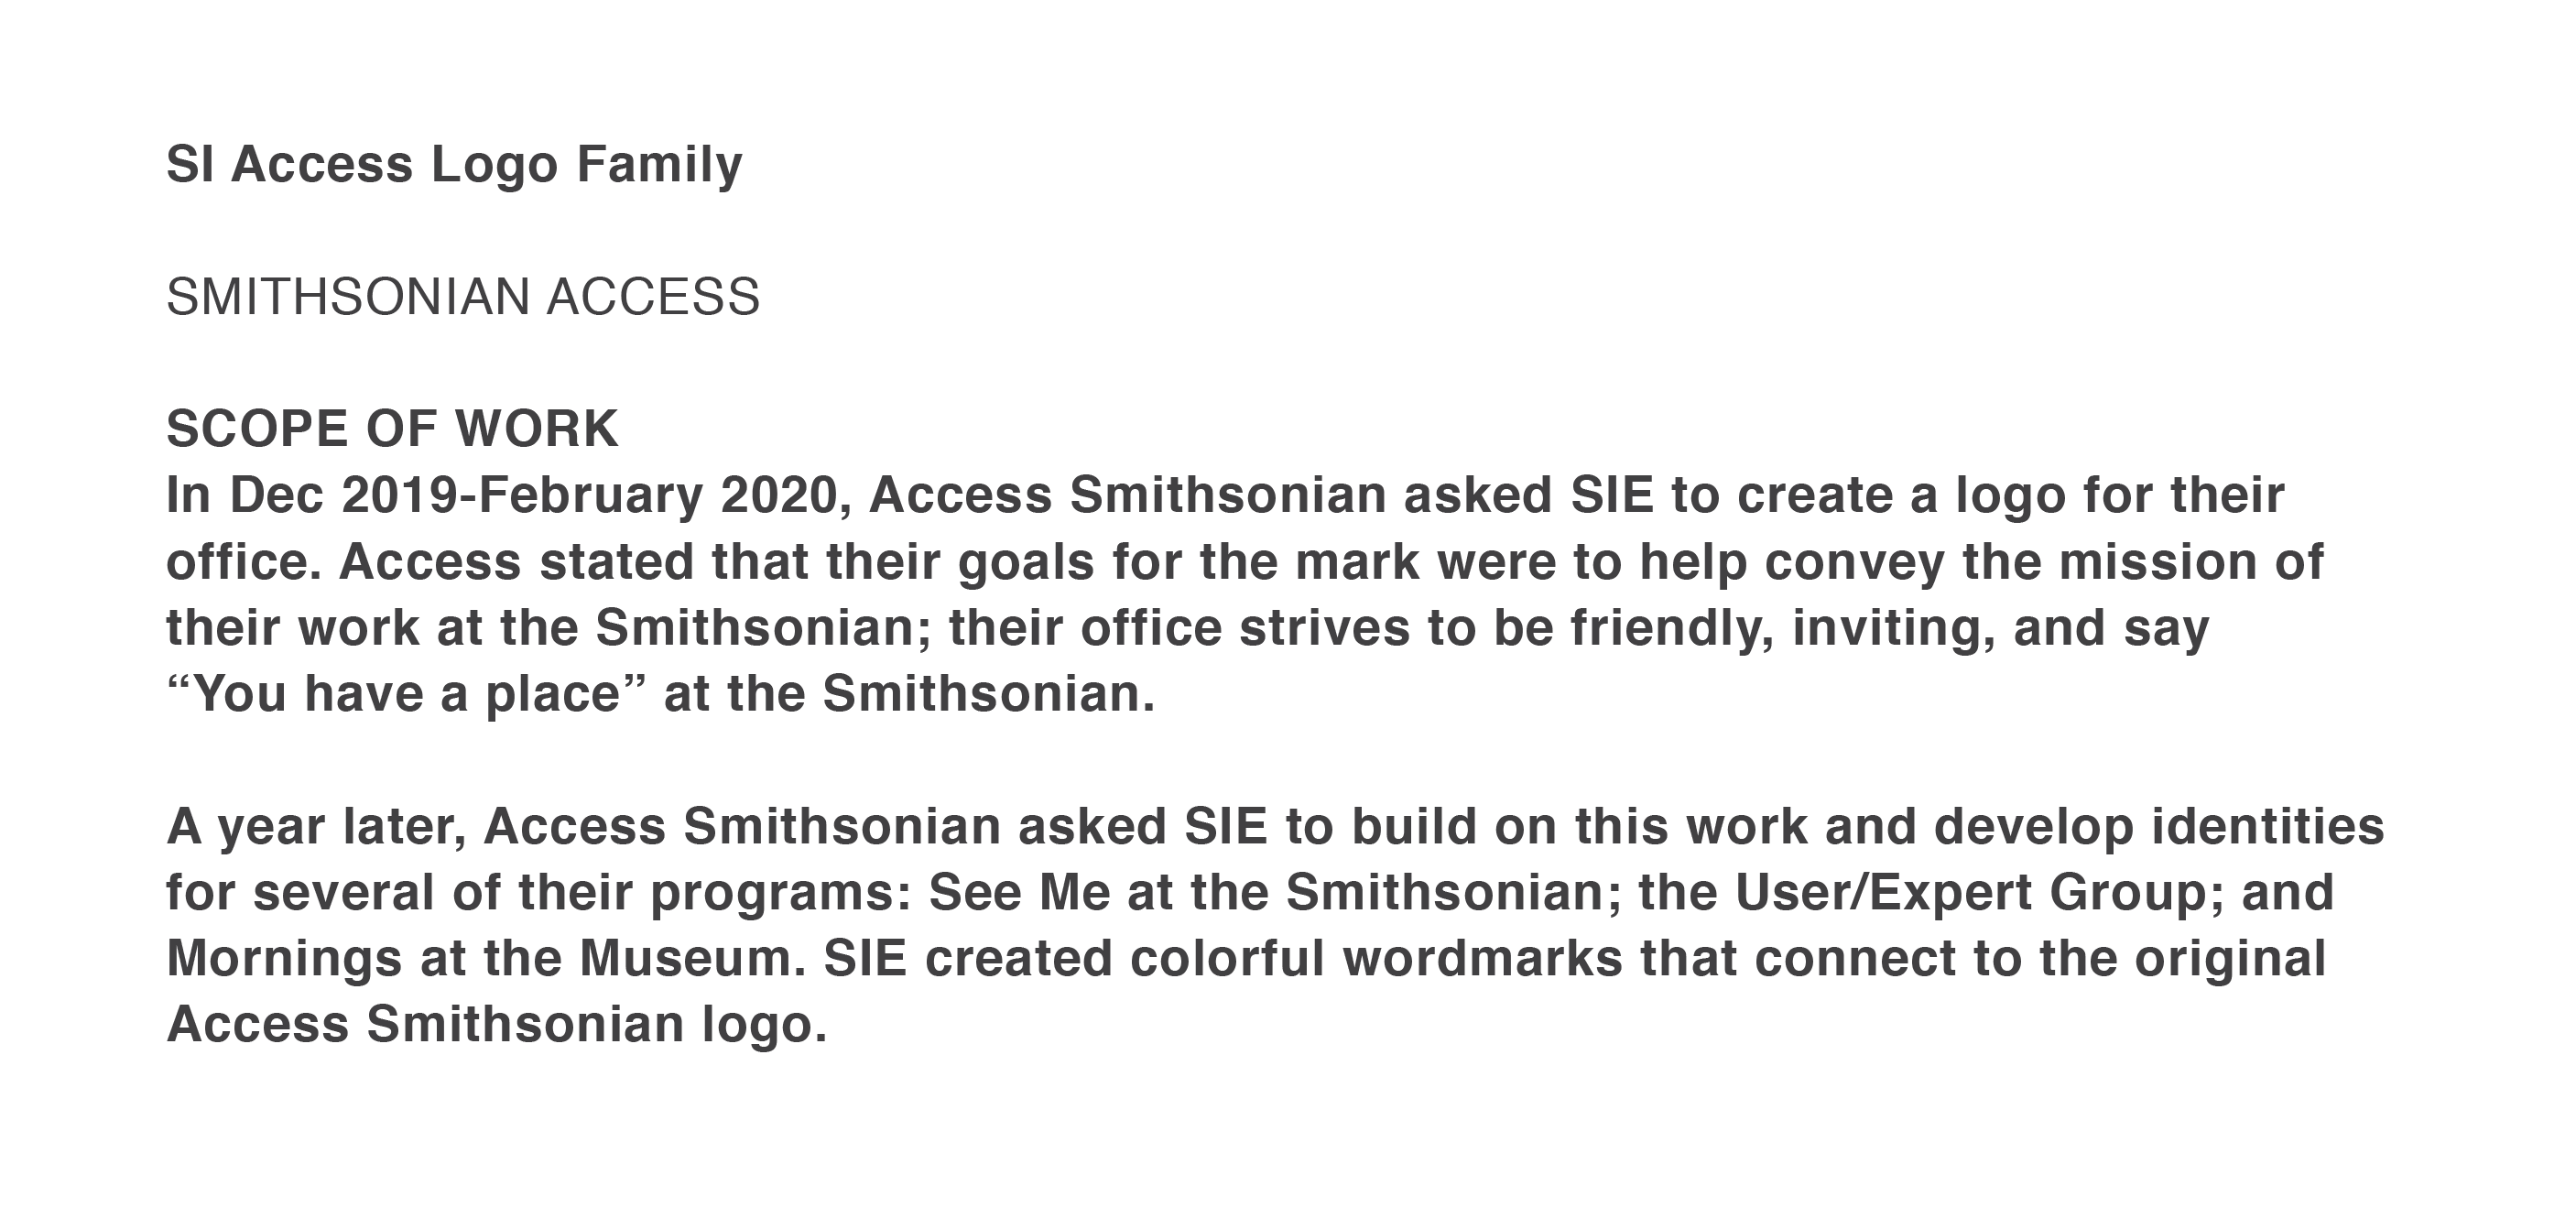 """SCOPE OF WORK  In Dec 2019-February 2020, Access Smithsonian asked SIE to create a logo for their office. Access stated that their goals for the mark were to help convey the mission of  their work at the Smithsonian; their office strives to be friendly, inviting, and say  """"You have a place"""" at the Smithsonian.  A year later, Access Smithsonian asked SIE to build on this work and develop identities for several of their programs: See Me at the Smithsonian; the User/Expert Group; and Mornings at the Museum. SIE created colorful wordmarks that connect to the original Access Smithsonian logo."""